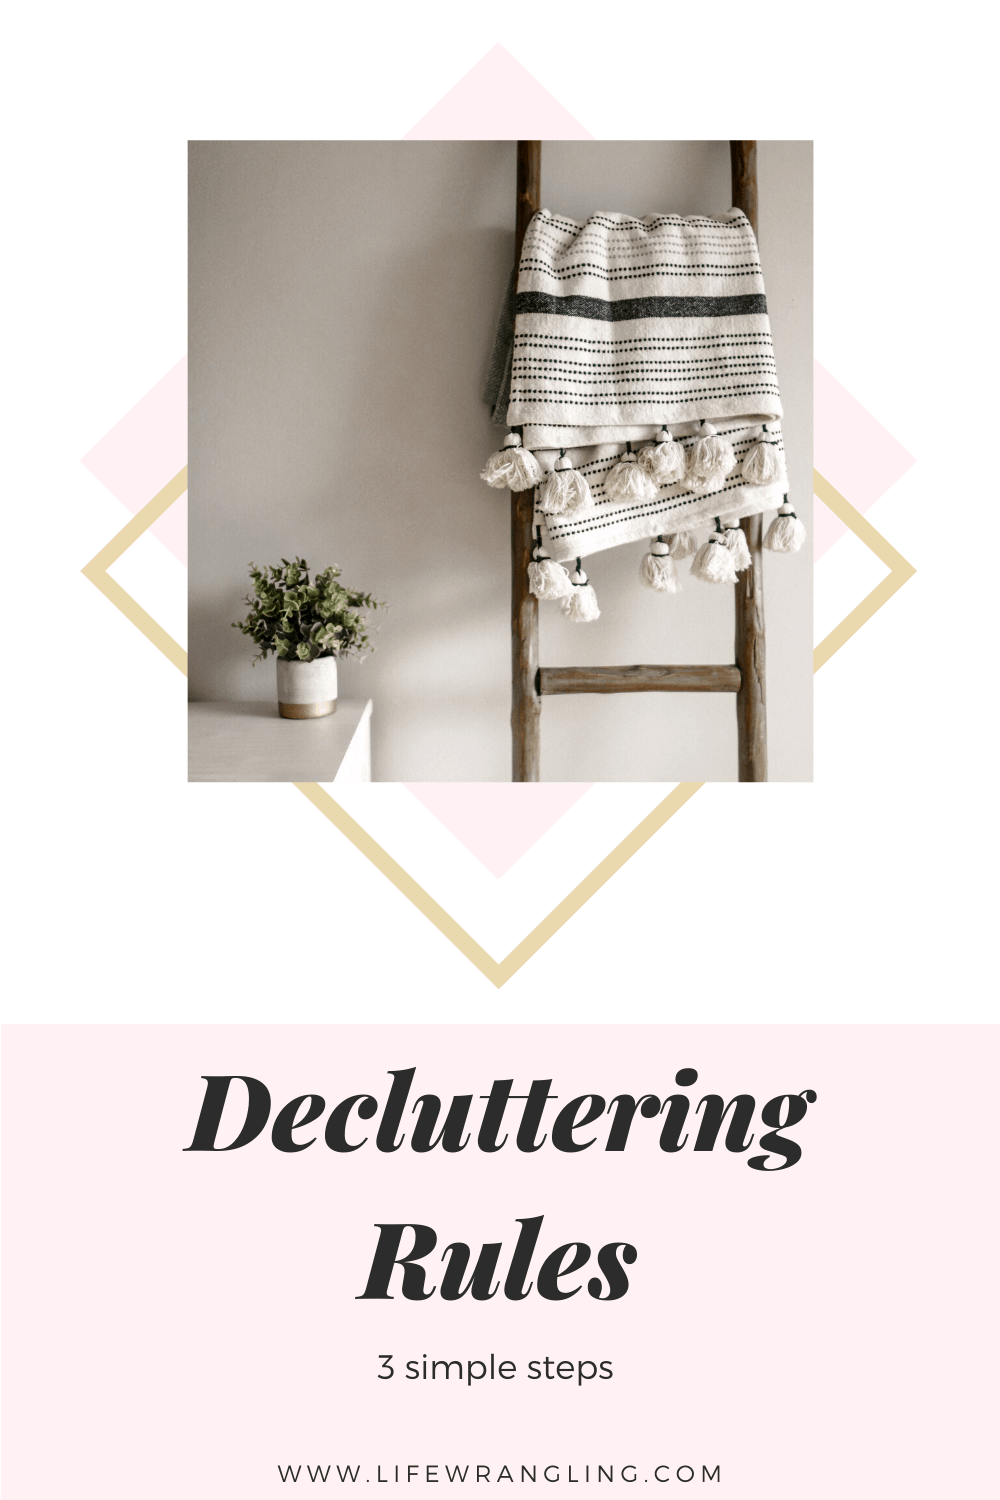 This simple three step system will make it as easy as possible to complete one decluttering task each day until things are back under control. #declutteringrules